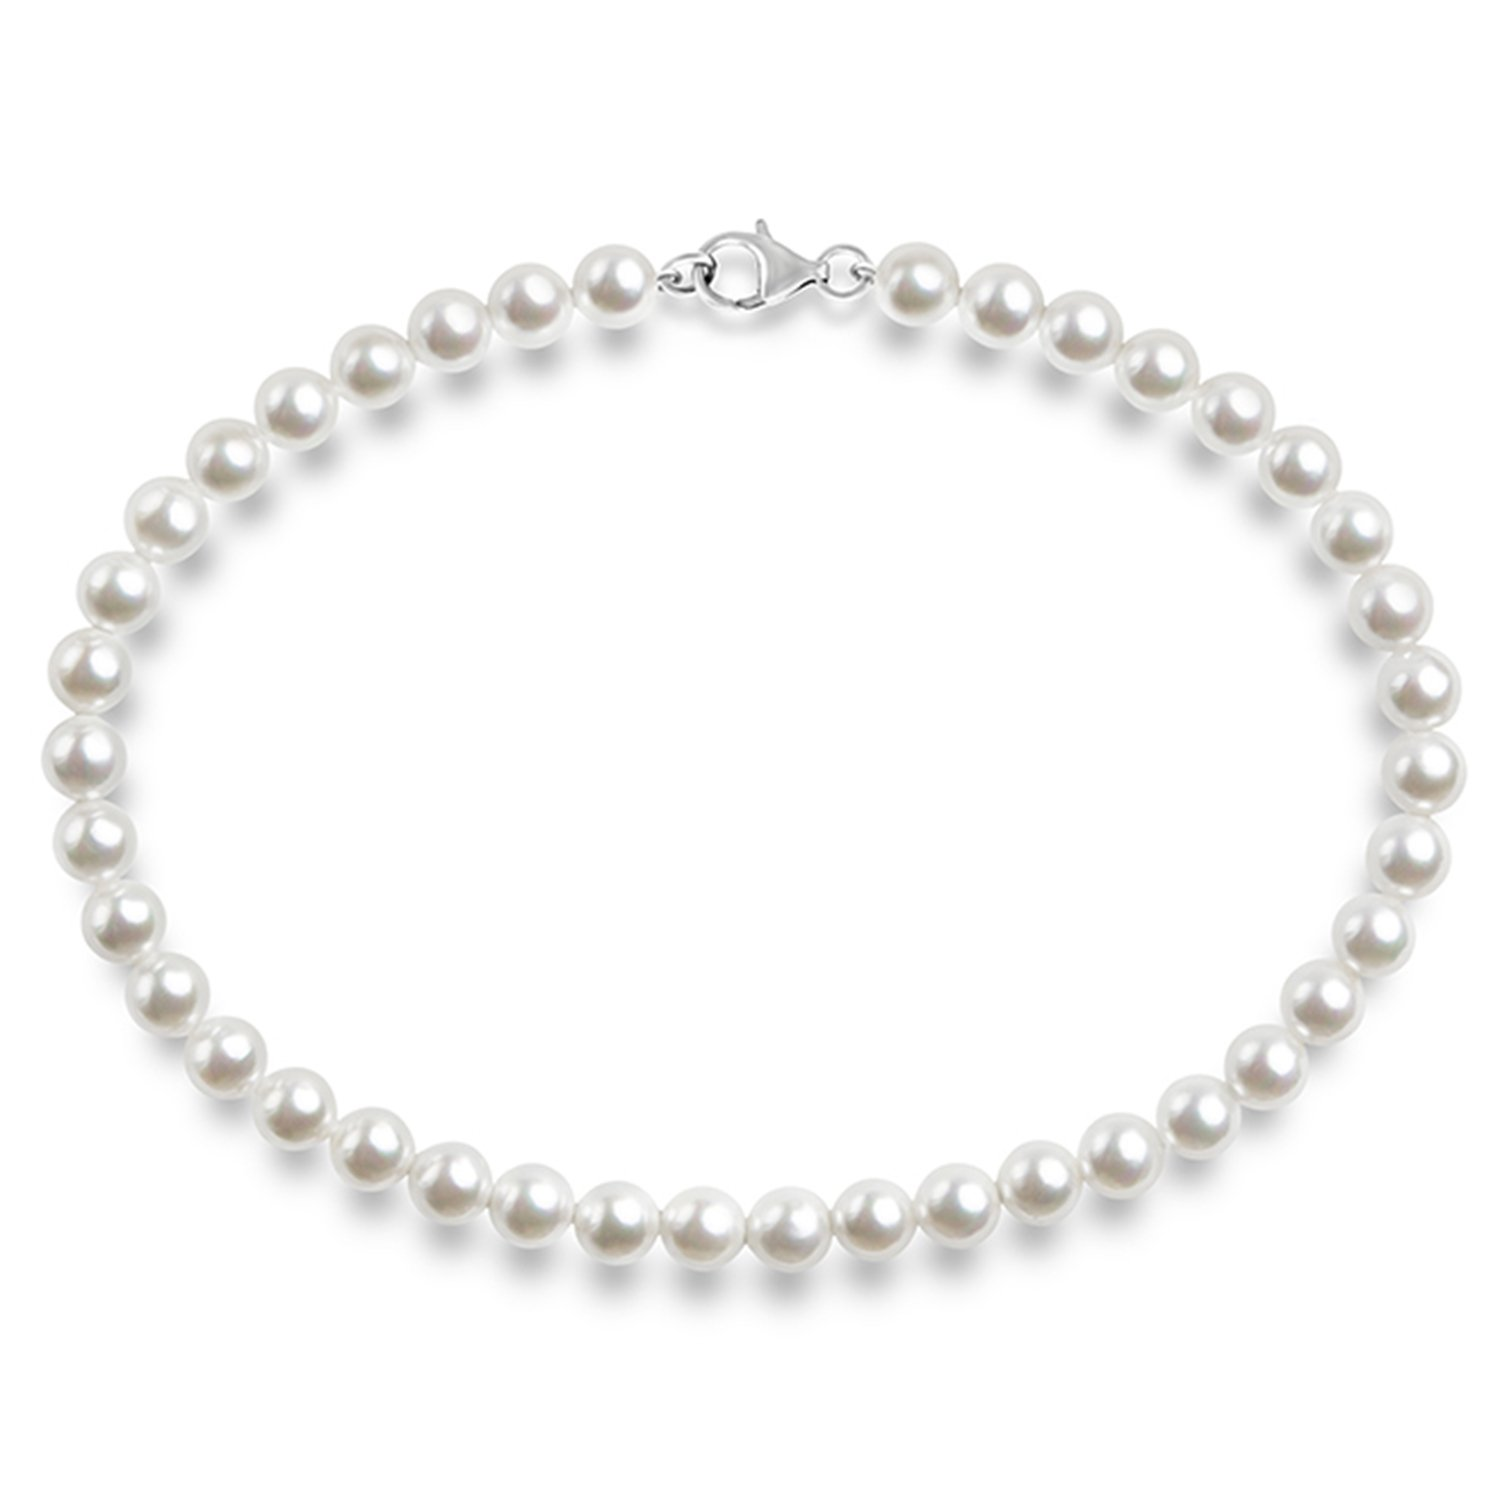 PAVOI Sterling Silver Round White Simulated Shell Pearl Necklace Strand | Pearl Choker Necklace | Jewelry for Women - 16'' Length (6mm) by PAVOI